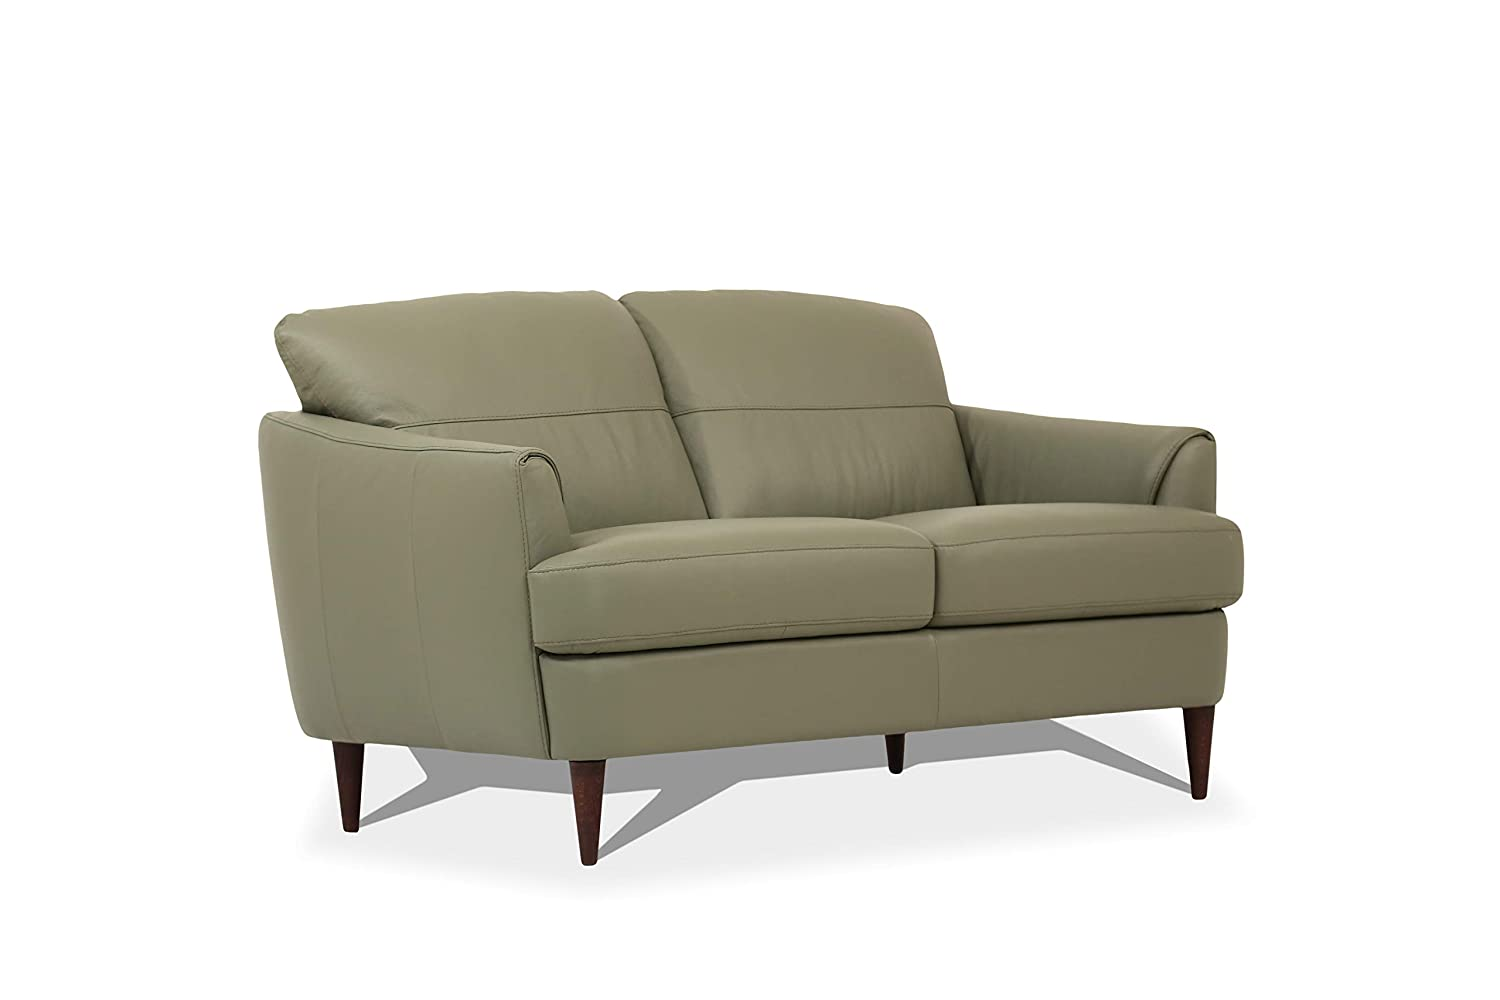 Amazon.com: ACME Furniture Tacoma Loveseat, Moss Green ...